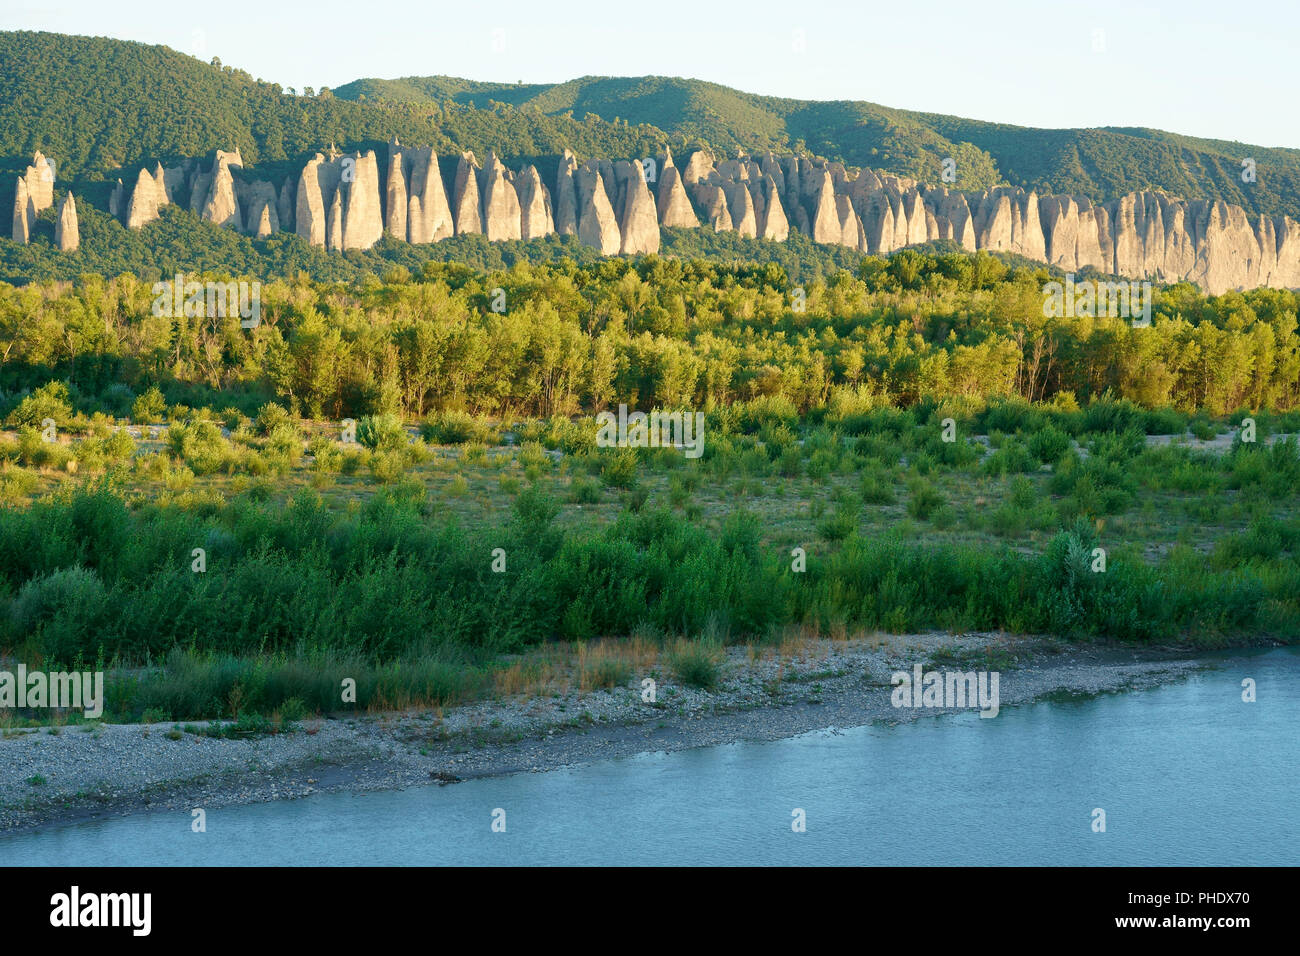 """LONGITUDINAL ROCK FORMATION OF PUDDINGSTONE CALLED """"THE PENITENTS"""" BETWEEN THE VALENSOLE PLATEAU AND THE DURANCE RIVER. Les Mées, Provence, France. Stock Photo"""